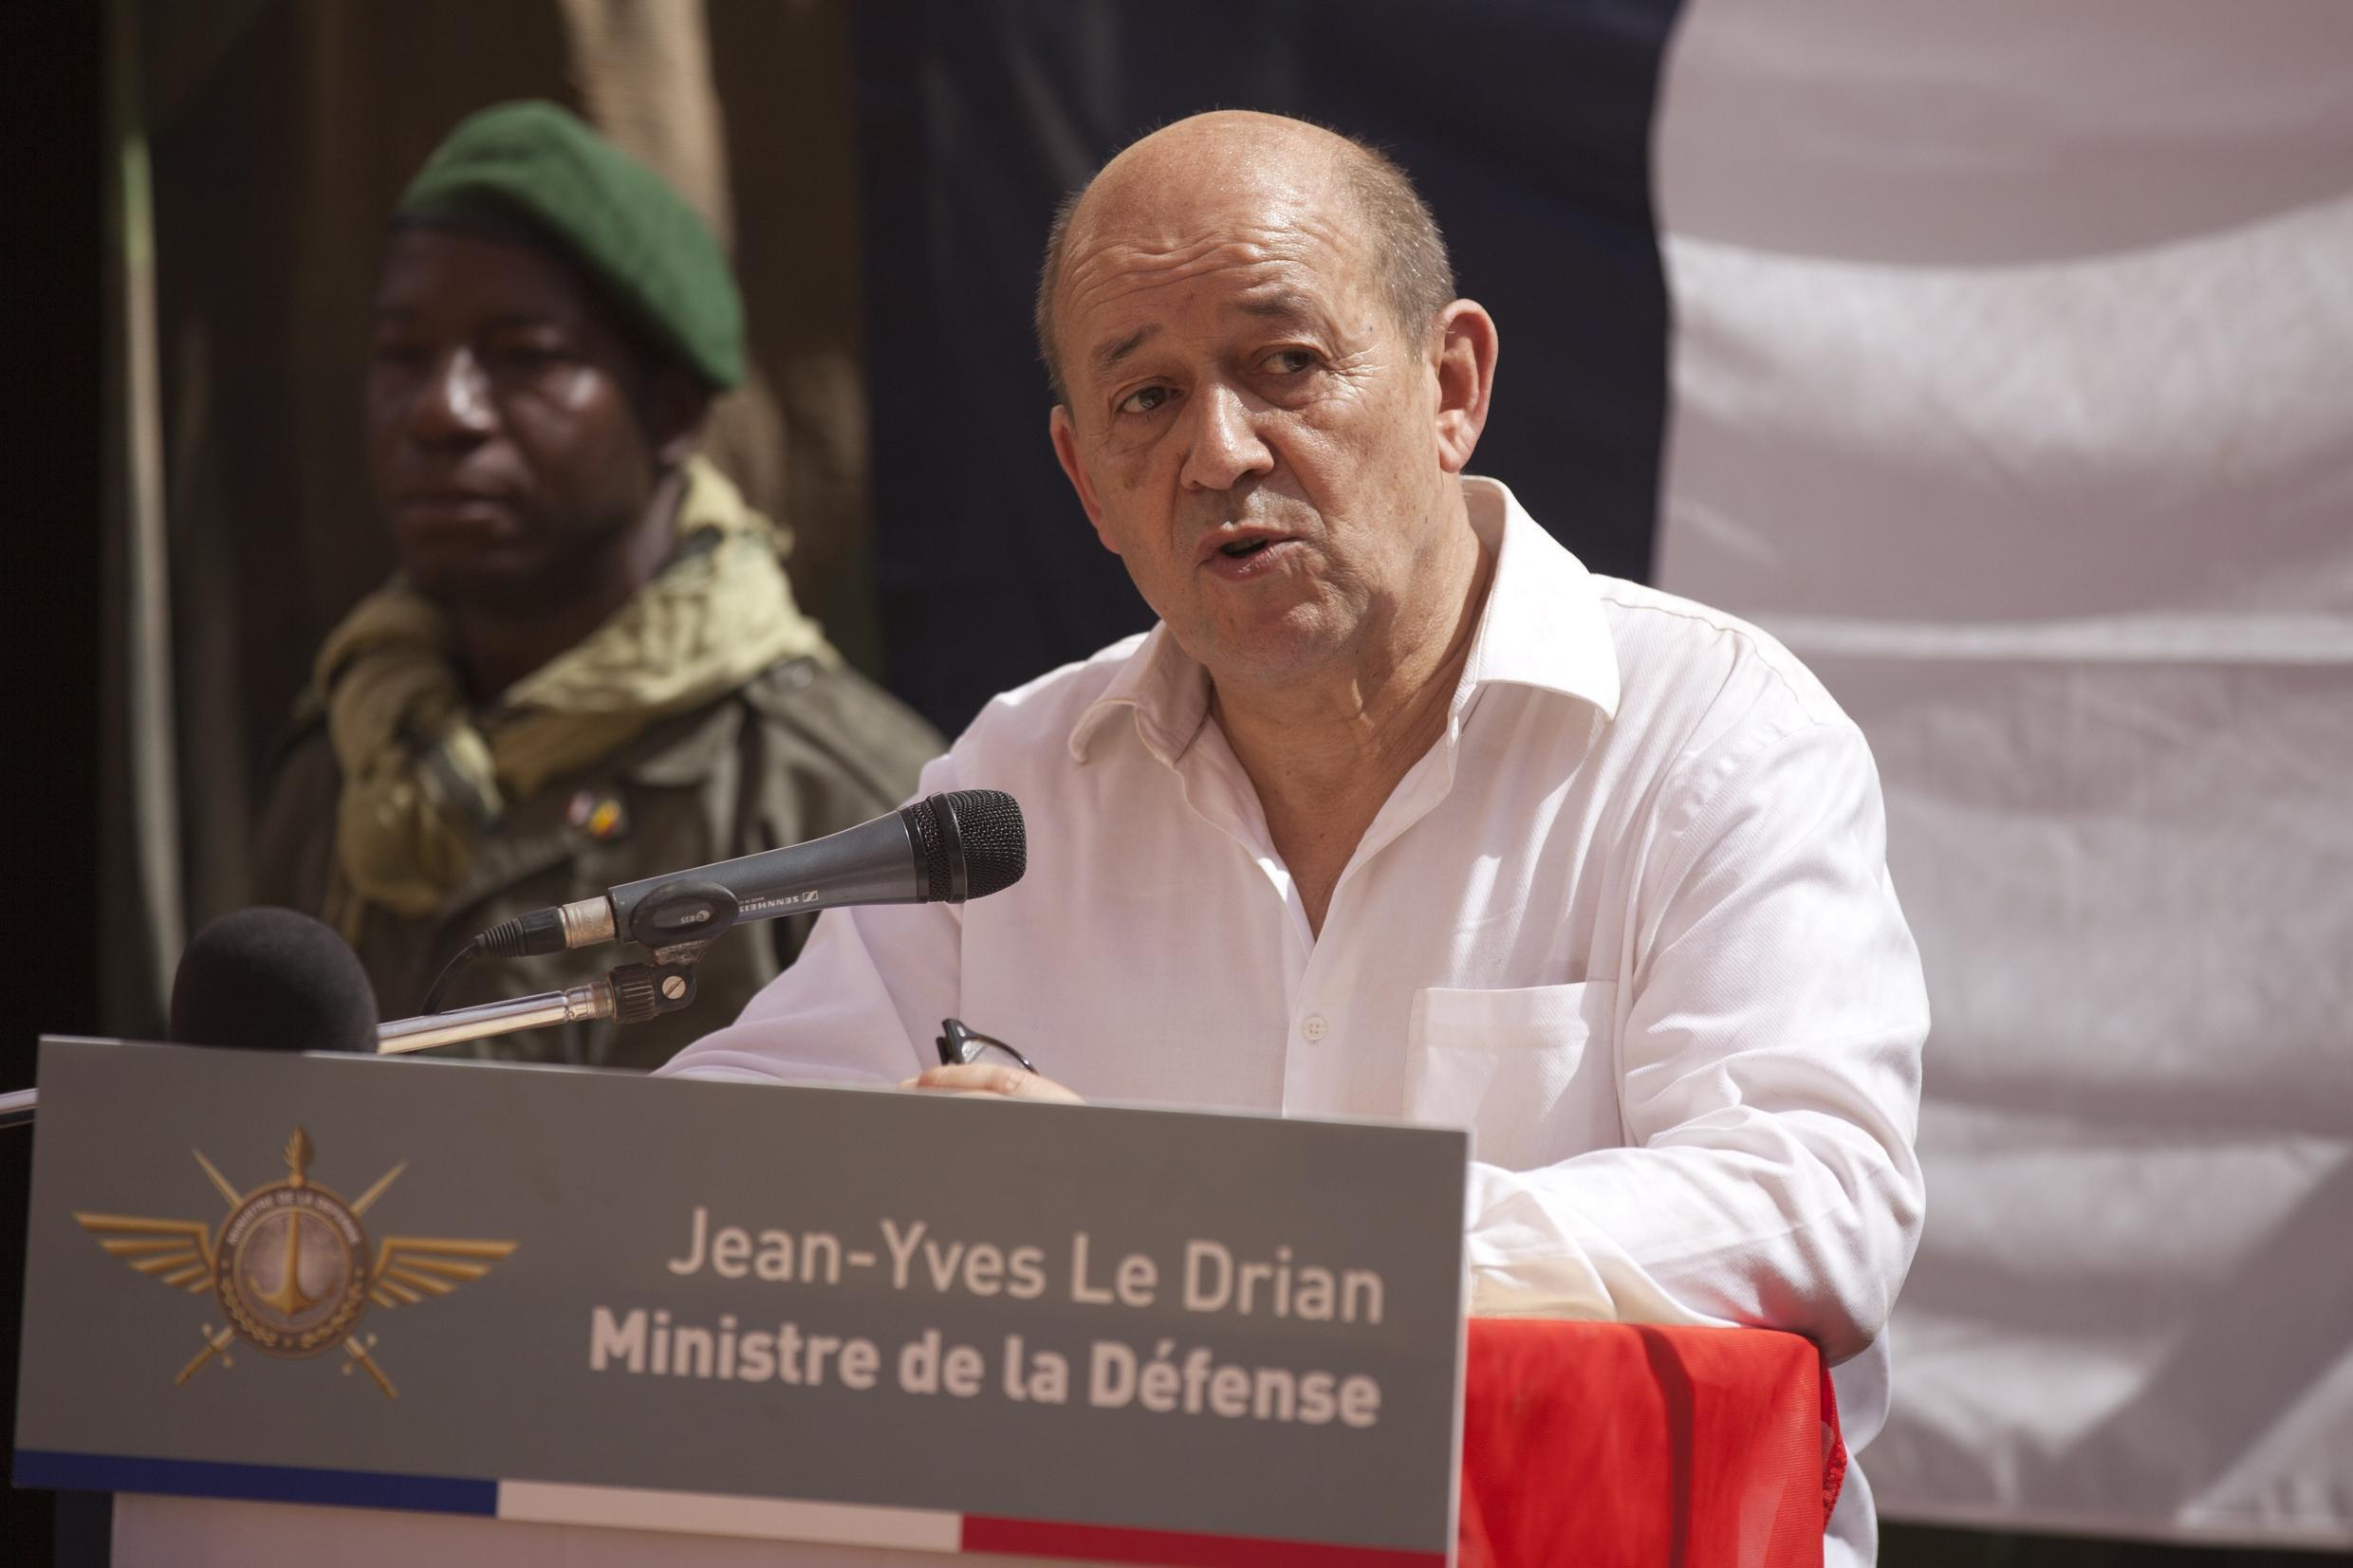 French Defence Minister Jean-Yves Le Drian speaks to French soldiers in Gao on Thursday